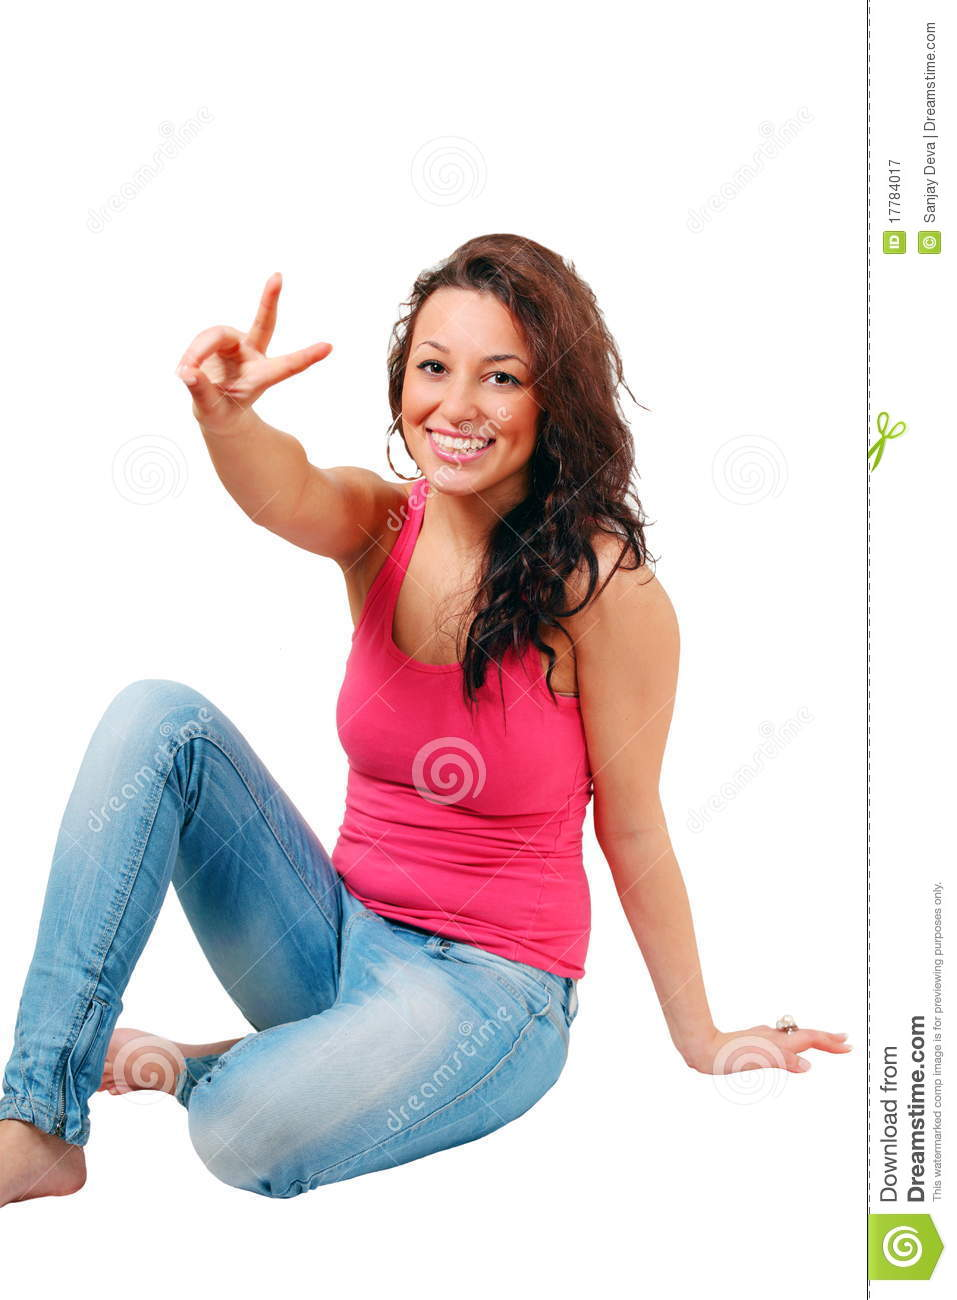 Girl with peace sign